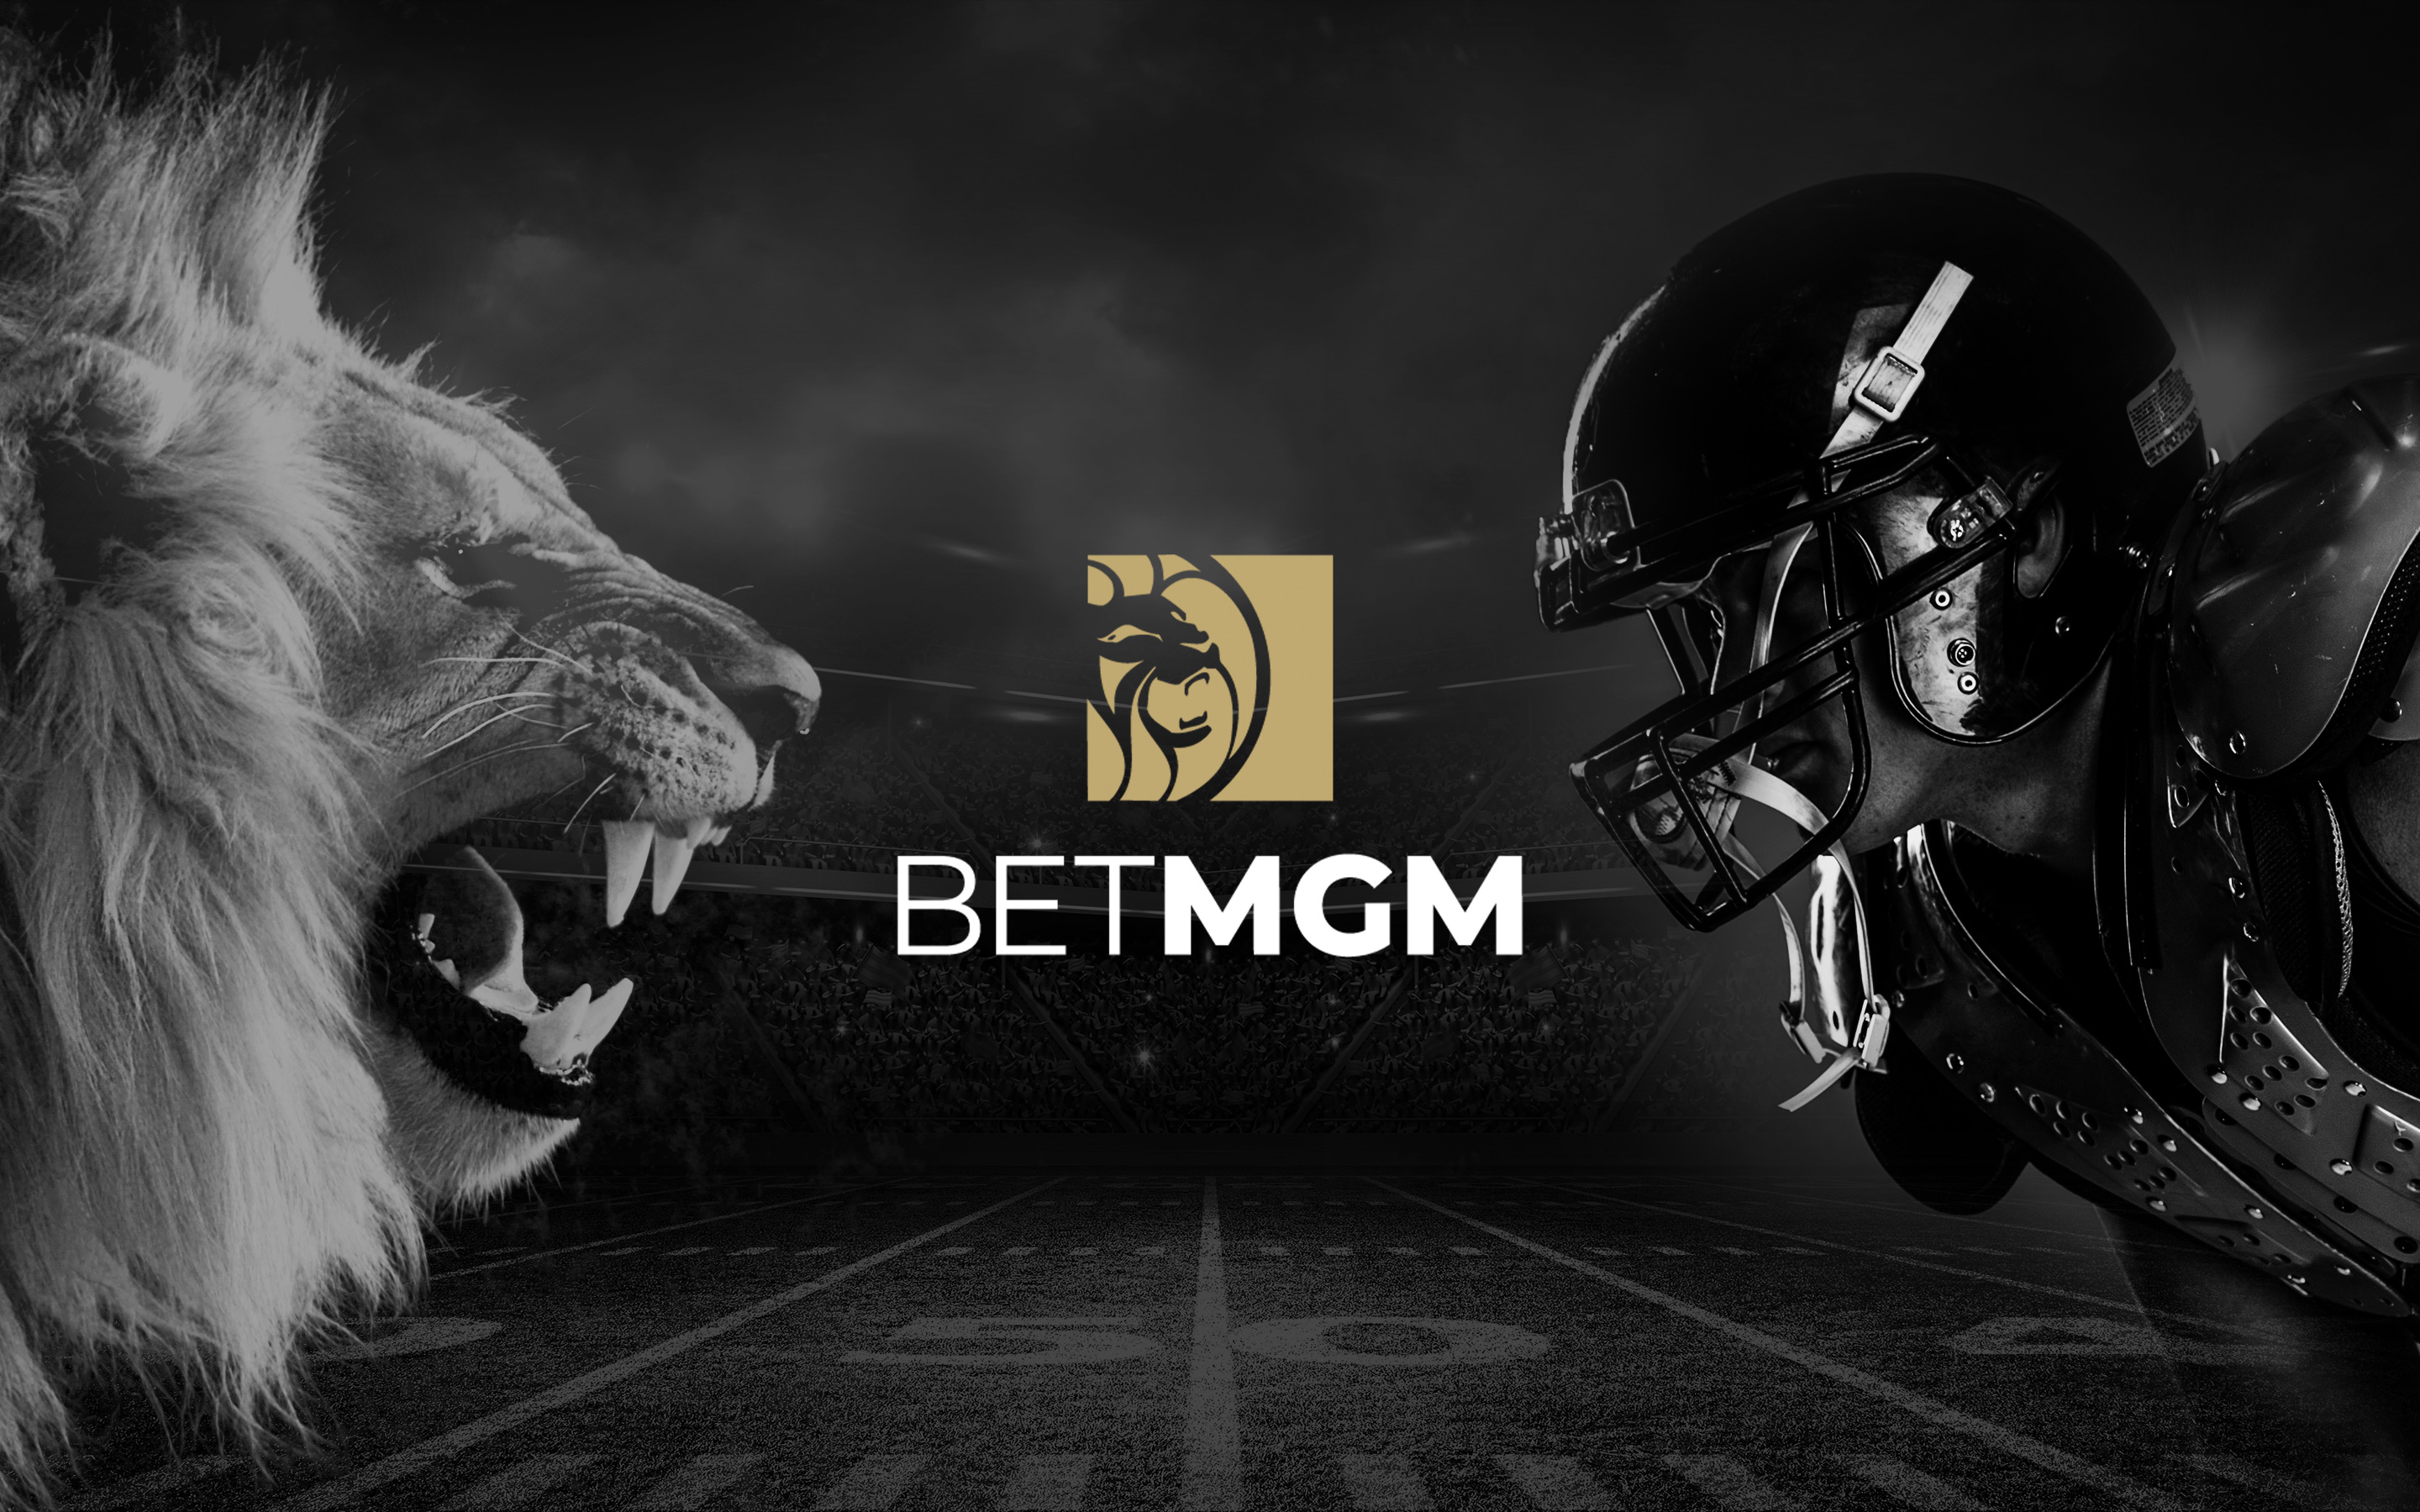 BetMGM is where the action begins!